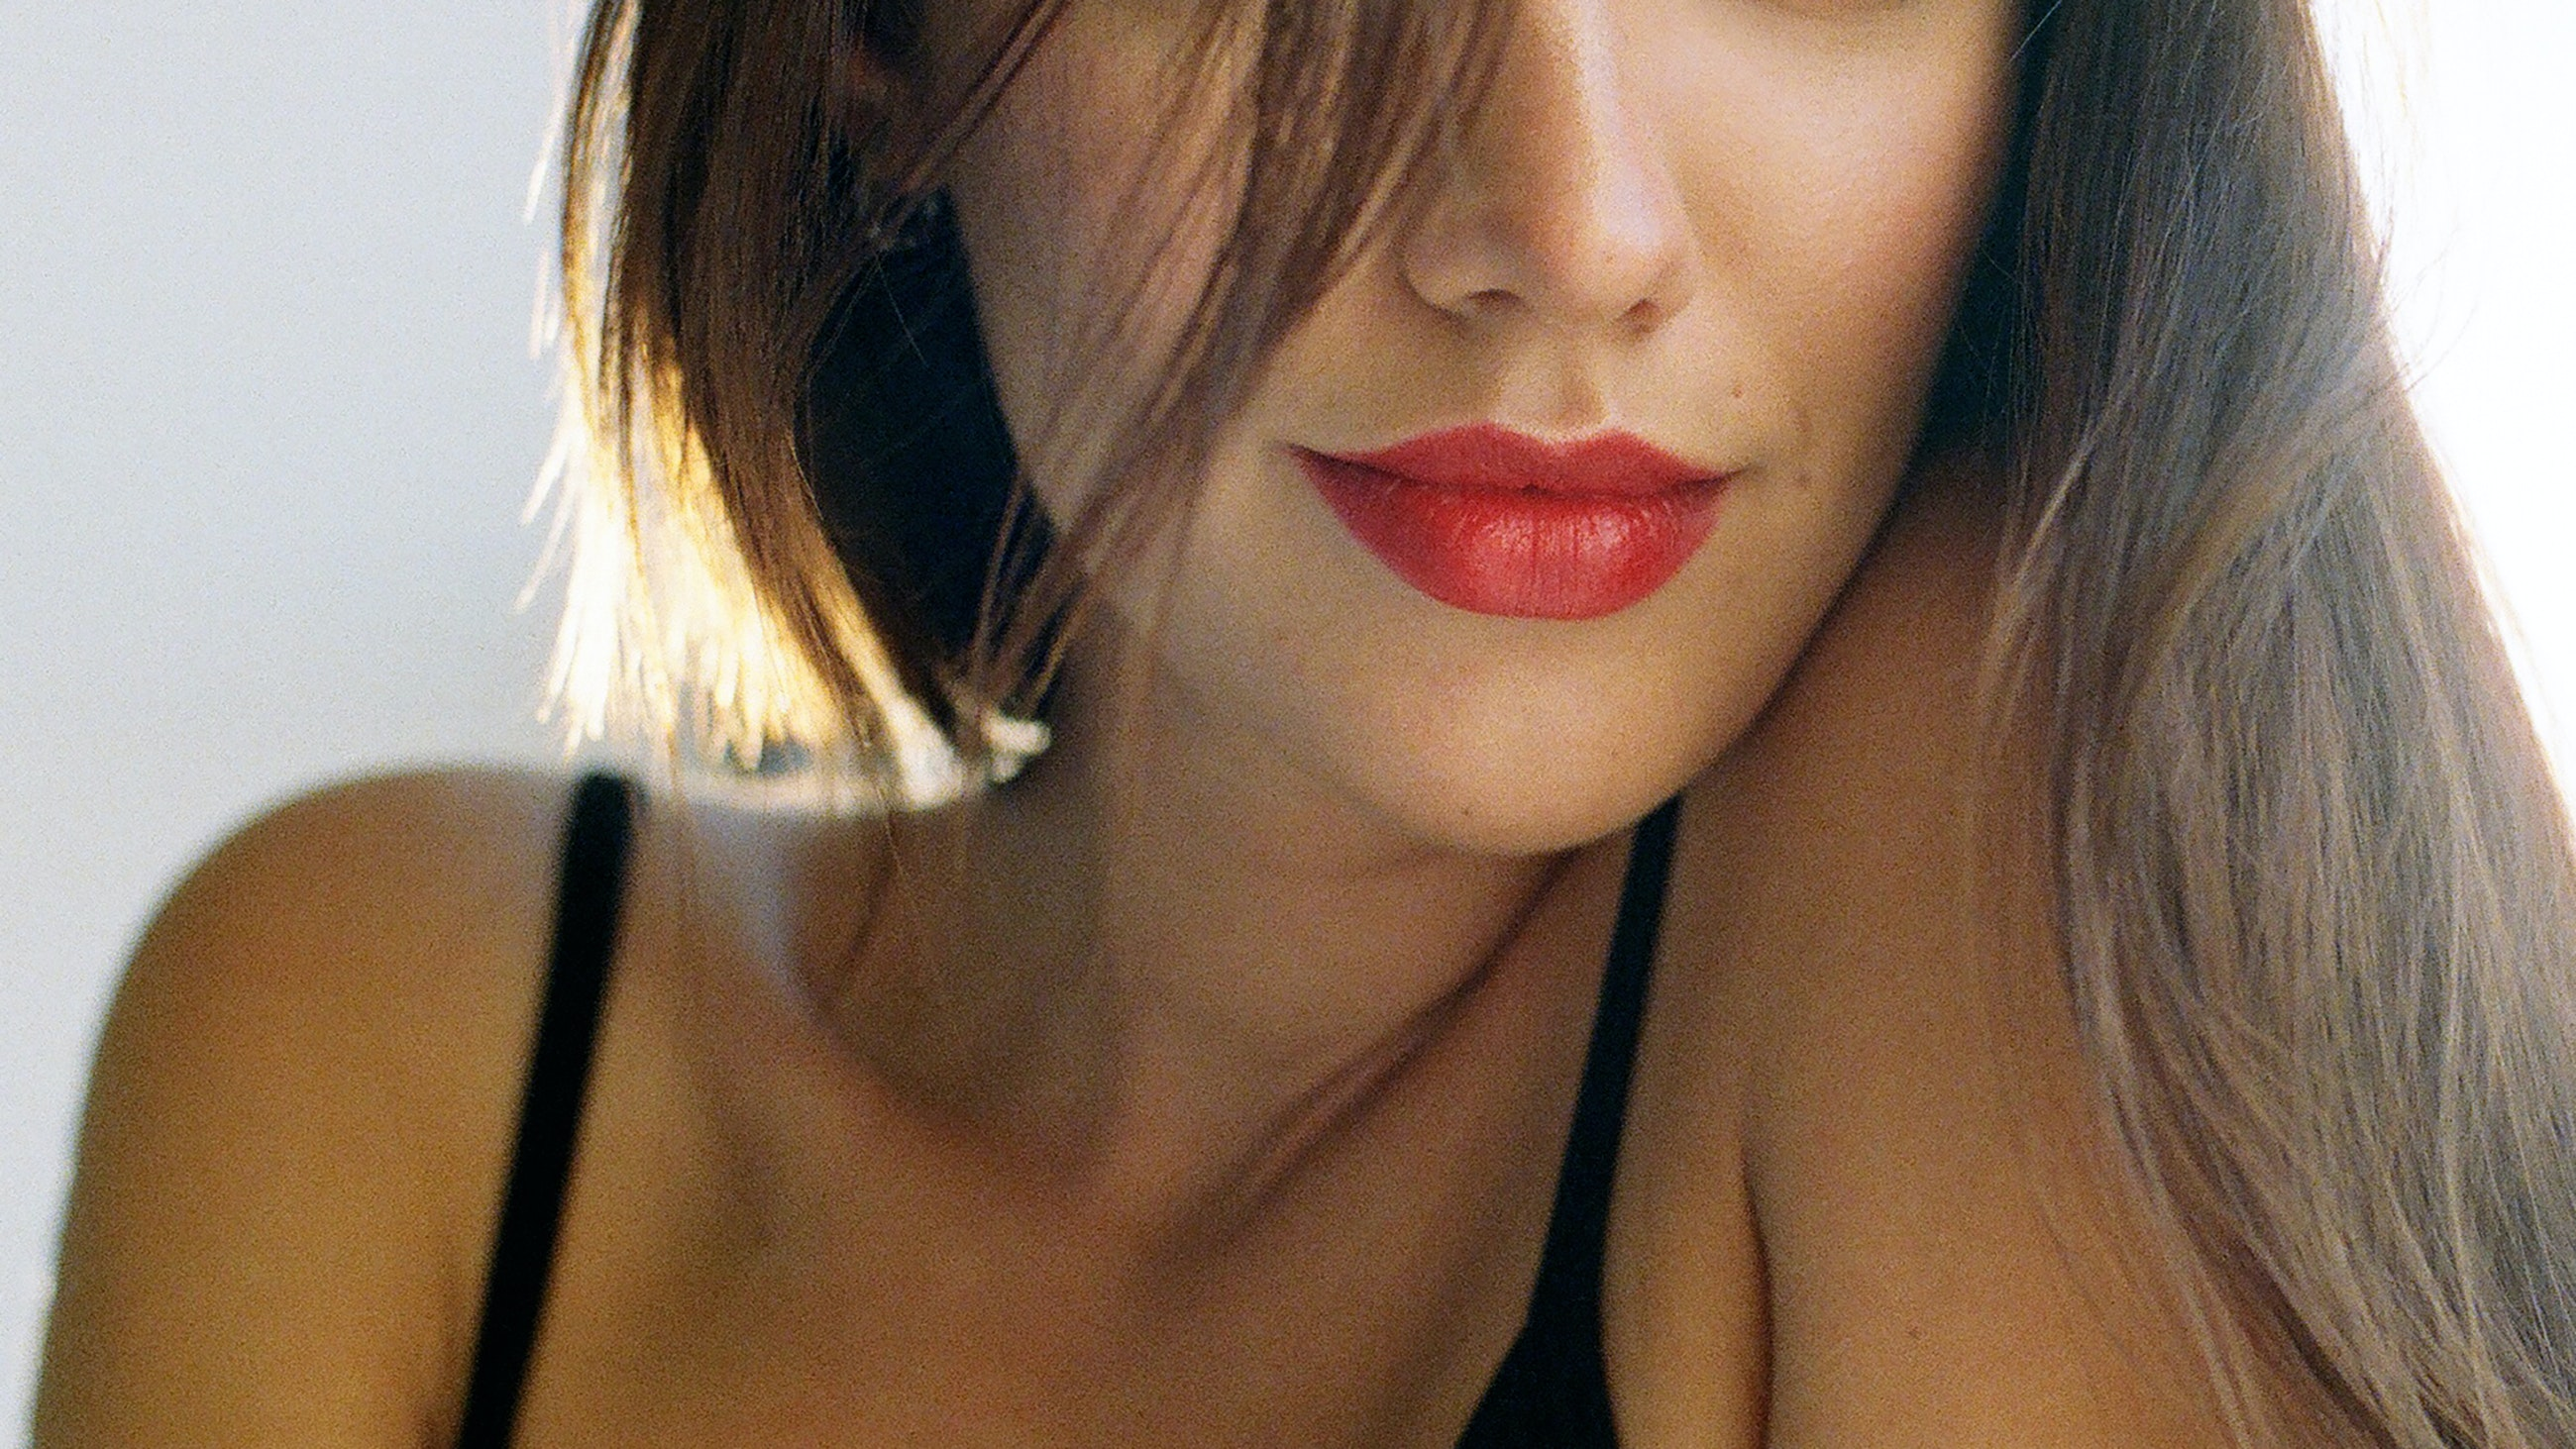 Smoking, Sun Damage, and More Reasons Your Lips Might Look Deflated